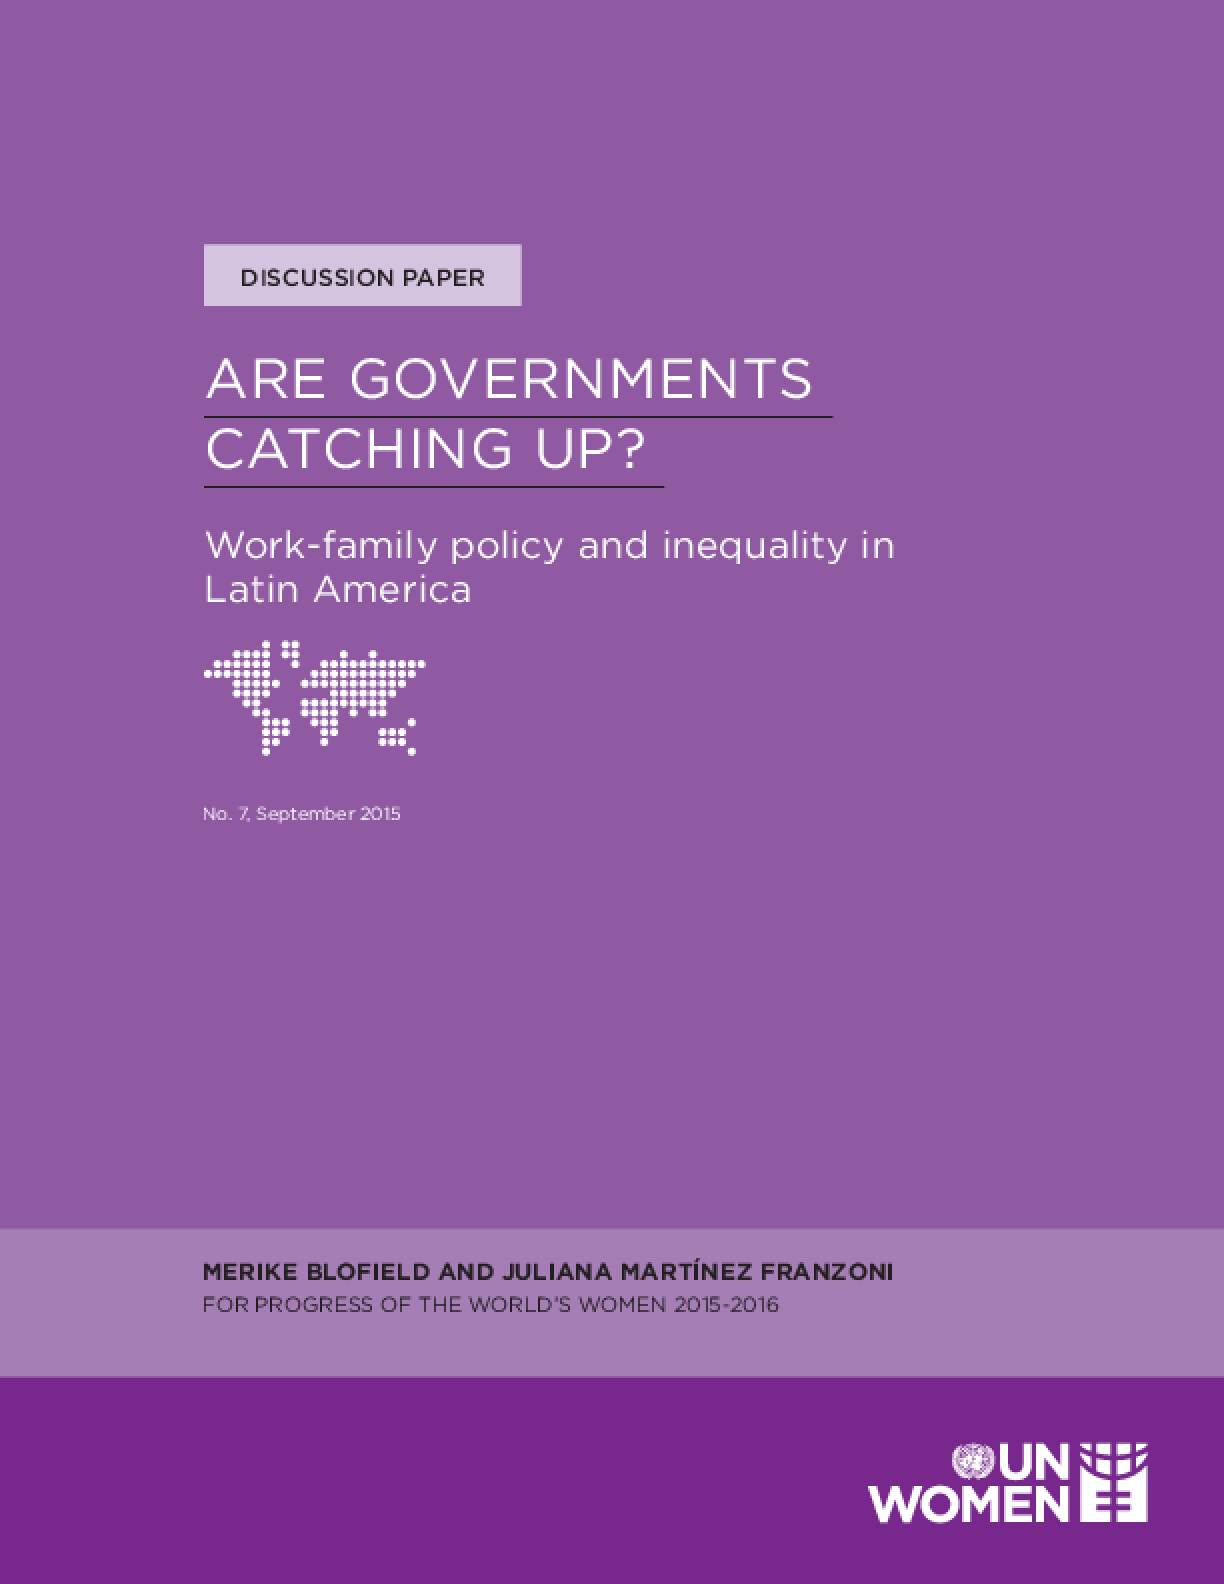 Are Governments Catching Up? Work-Family Policy and Inequality in Latin America